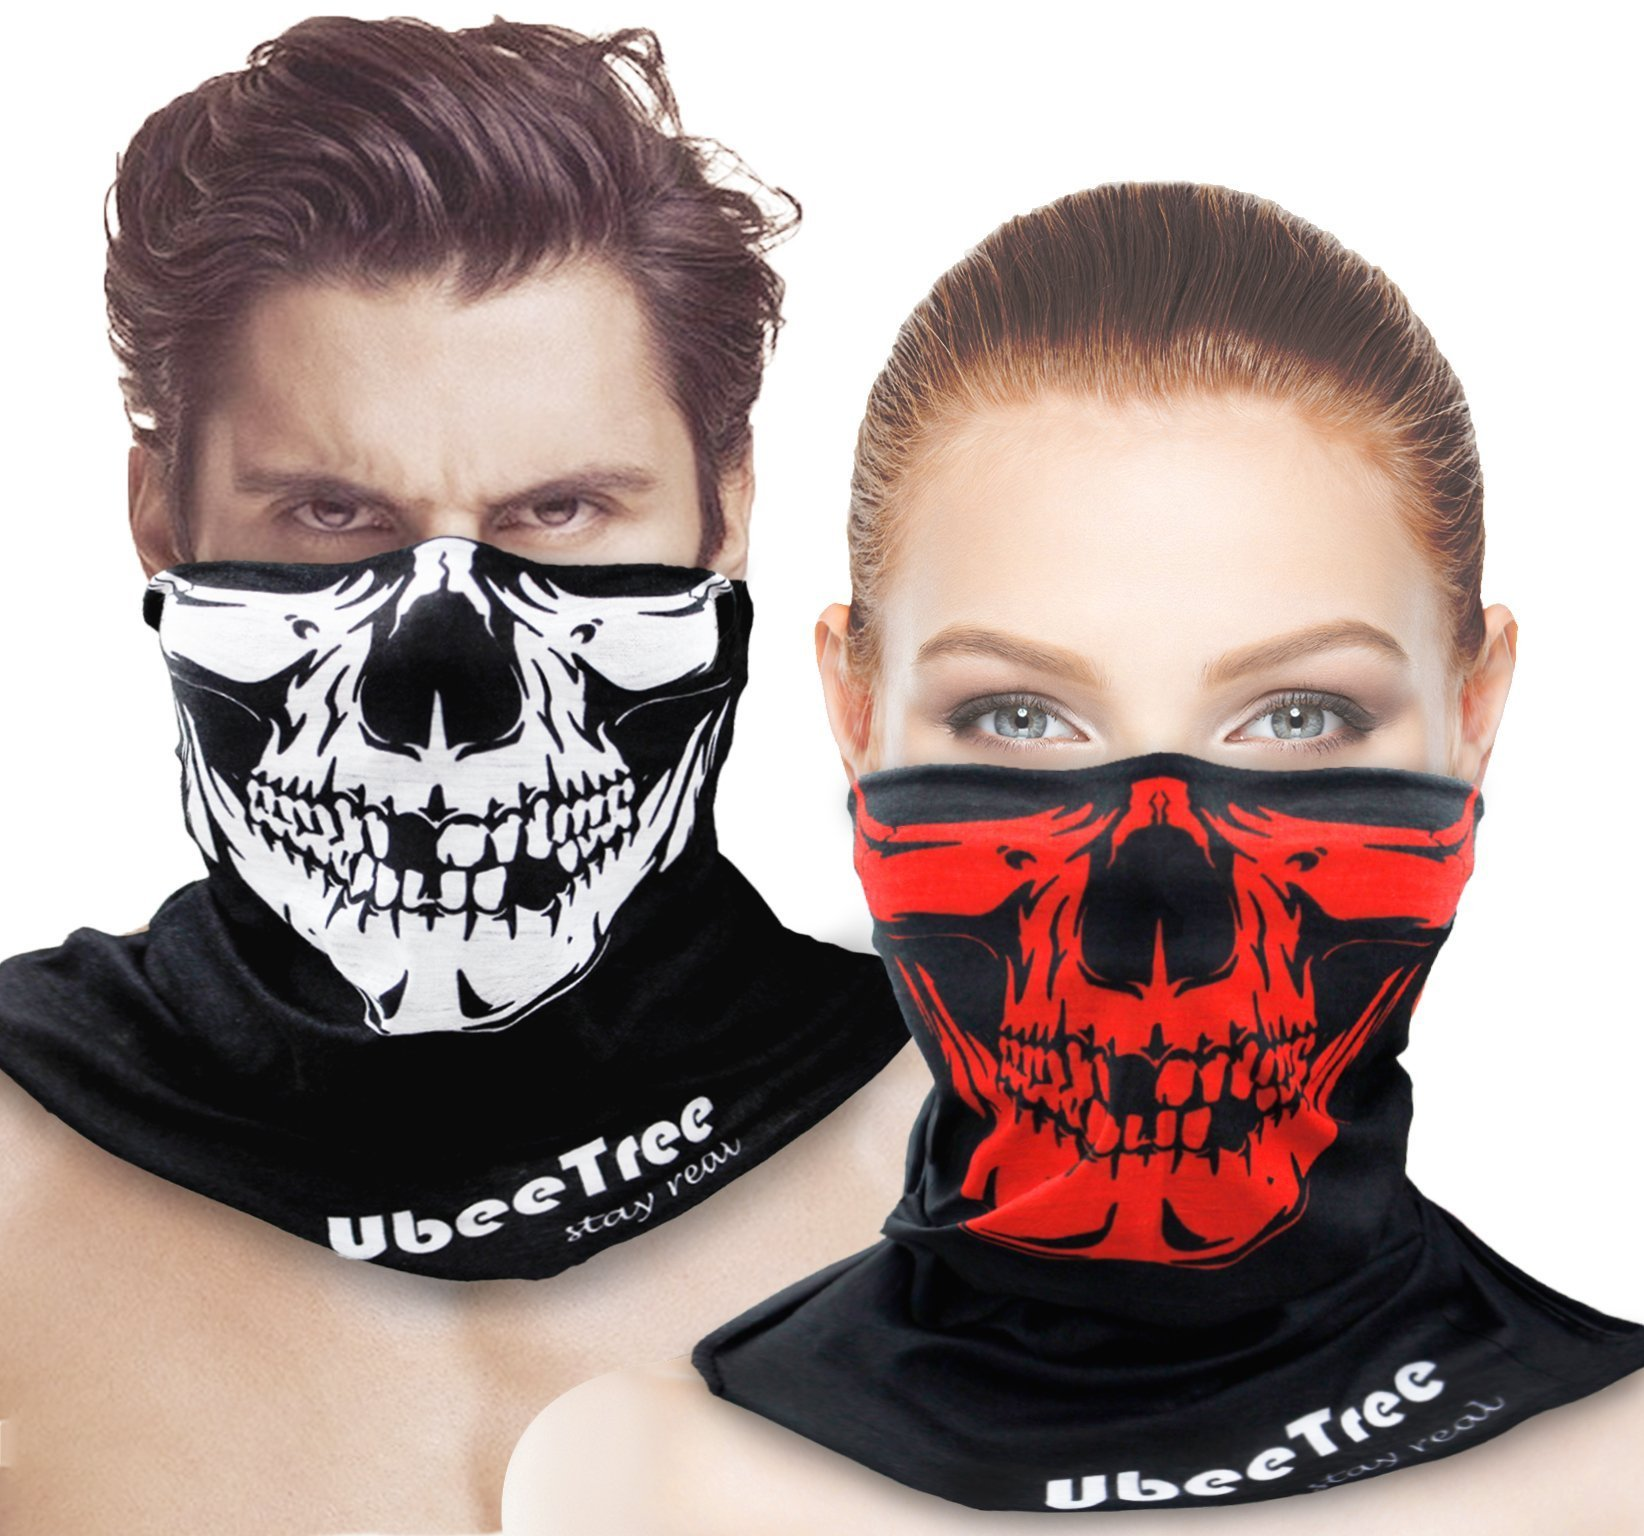 2 Packs Safety Reflective Riding Skull Face Mask Bandana Fishing Neck Gaiter Sun UV Dust Protection Windproof Ski Face Cover by UbeeTree